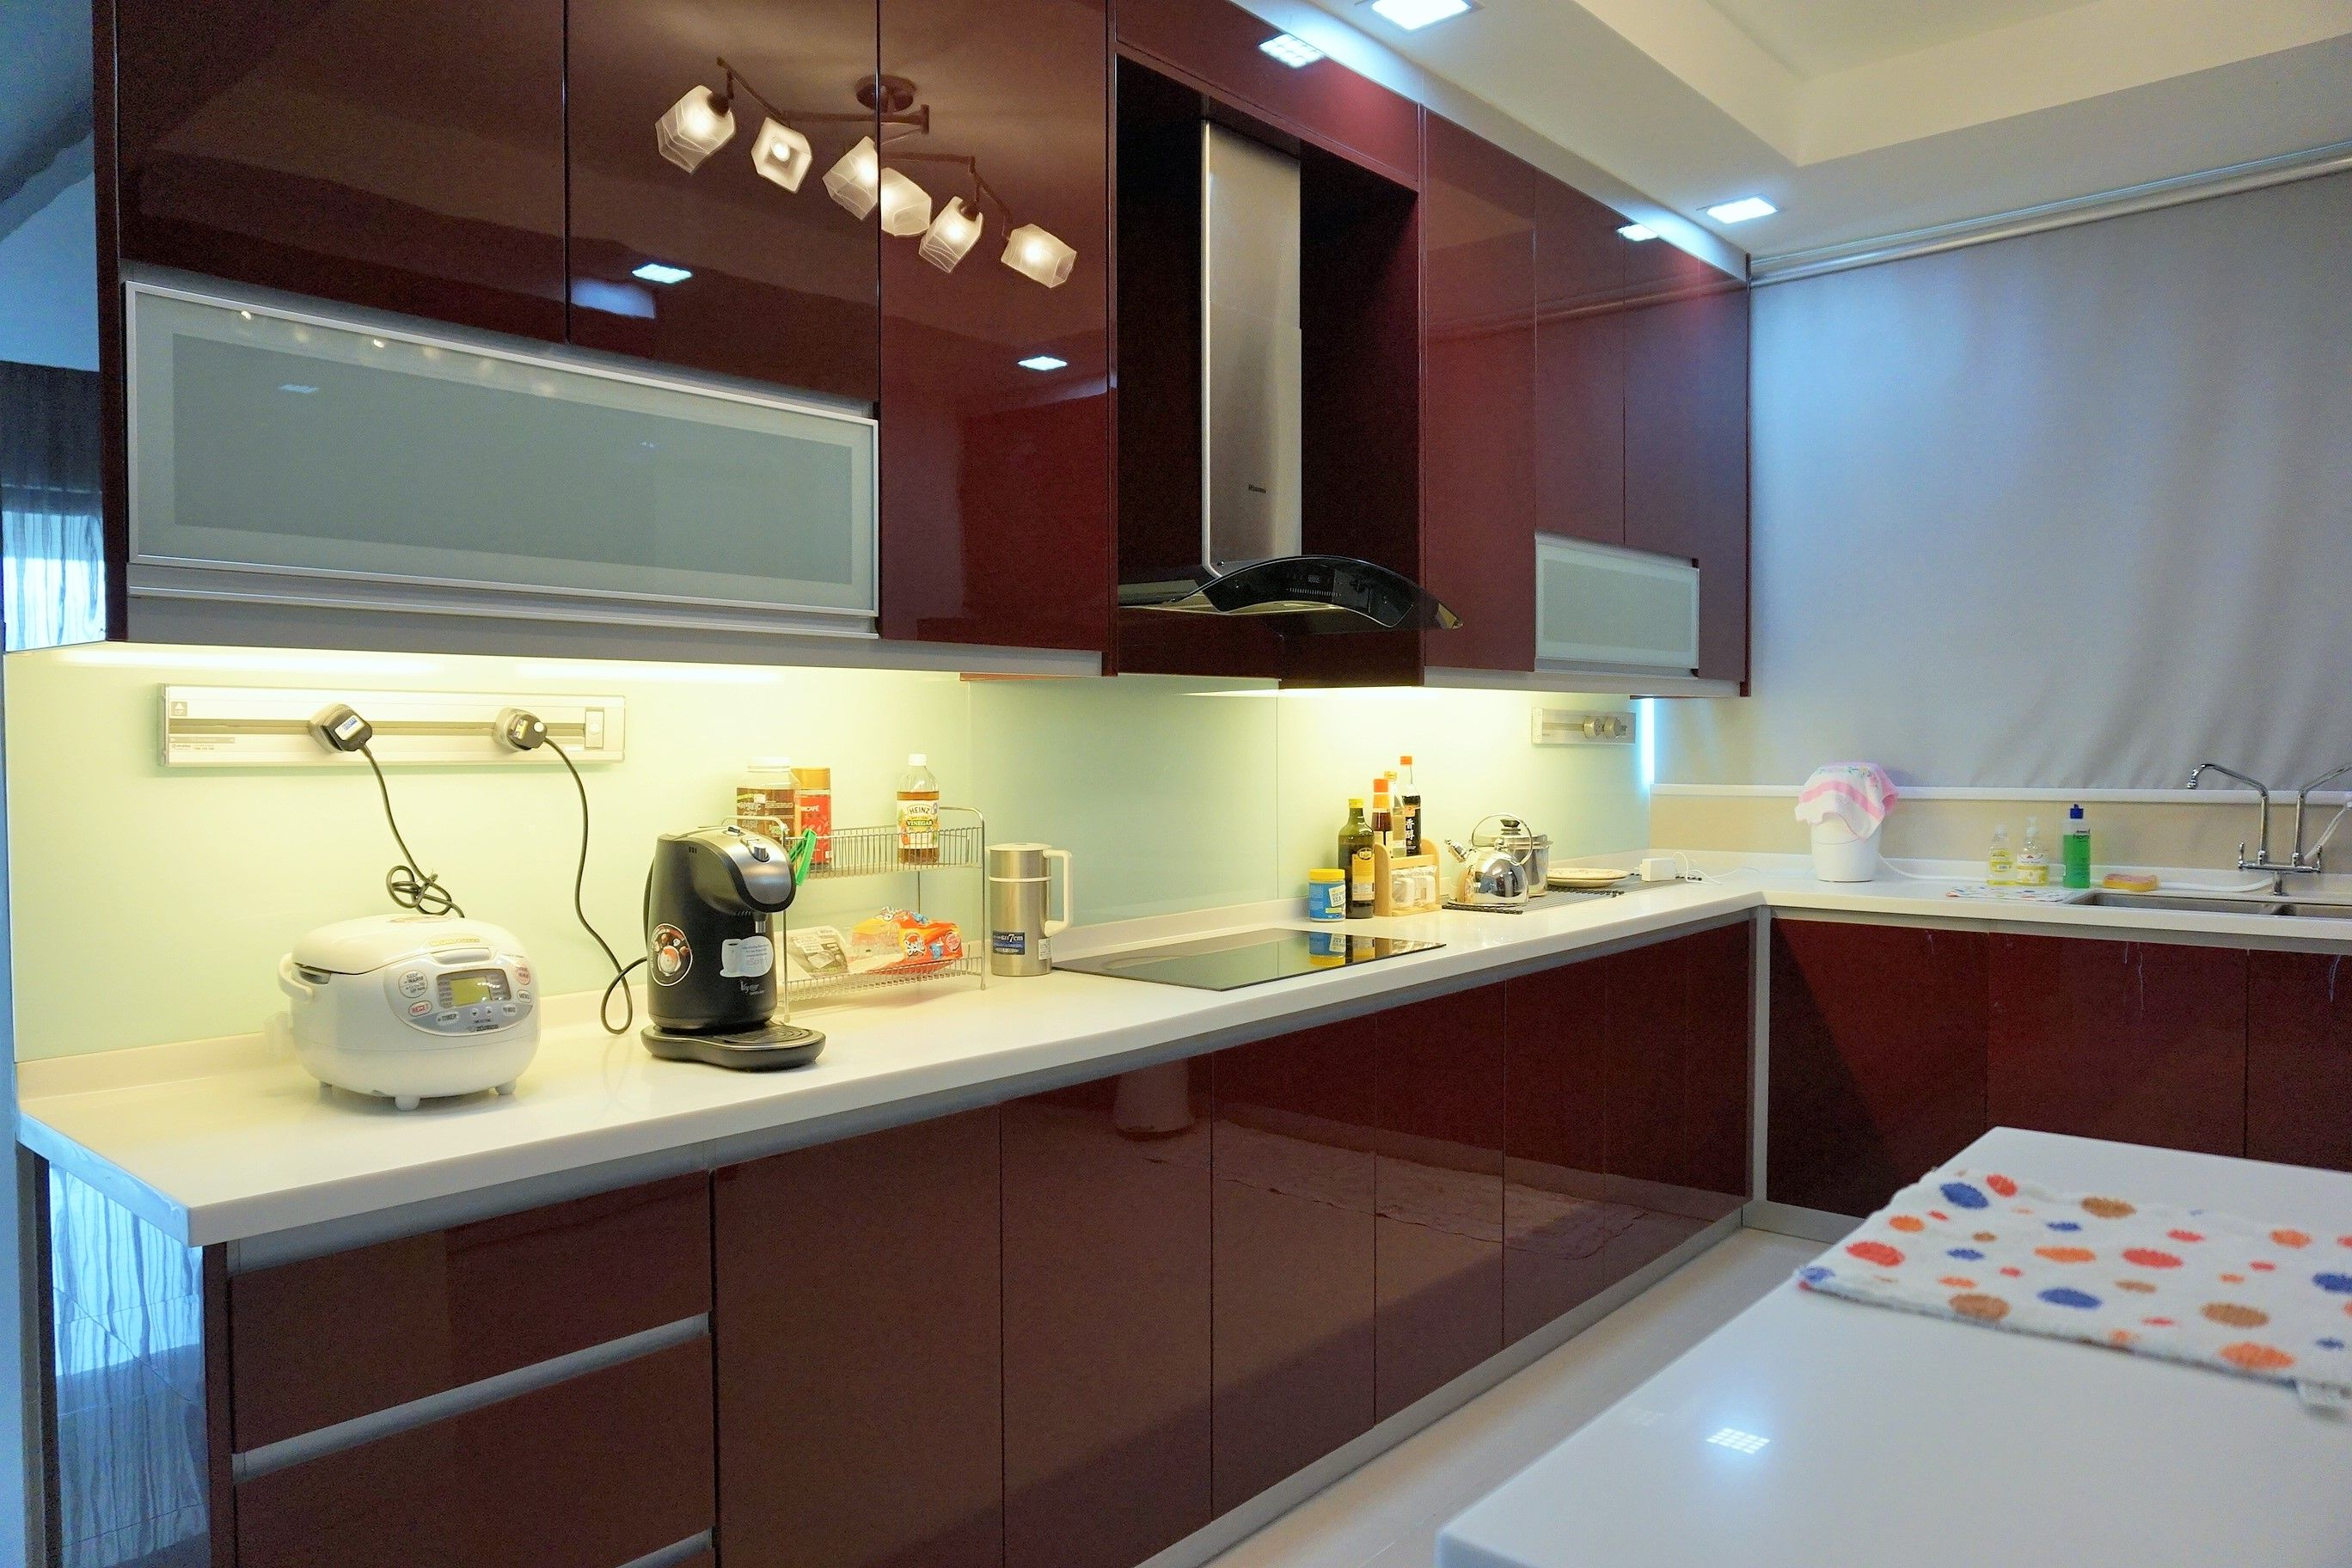 Pin By Recommend My On Elegant Red White Kitchen In Kuala Lumpur With Images Red And White Kitchen Gorgeous Kitchens Home Repair Services